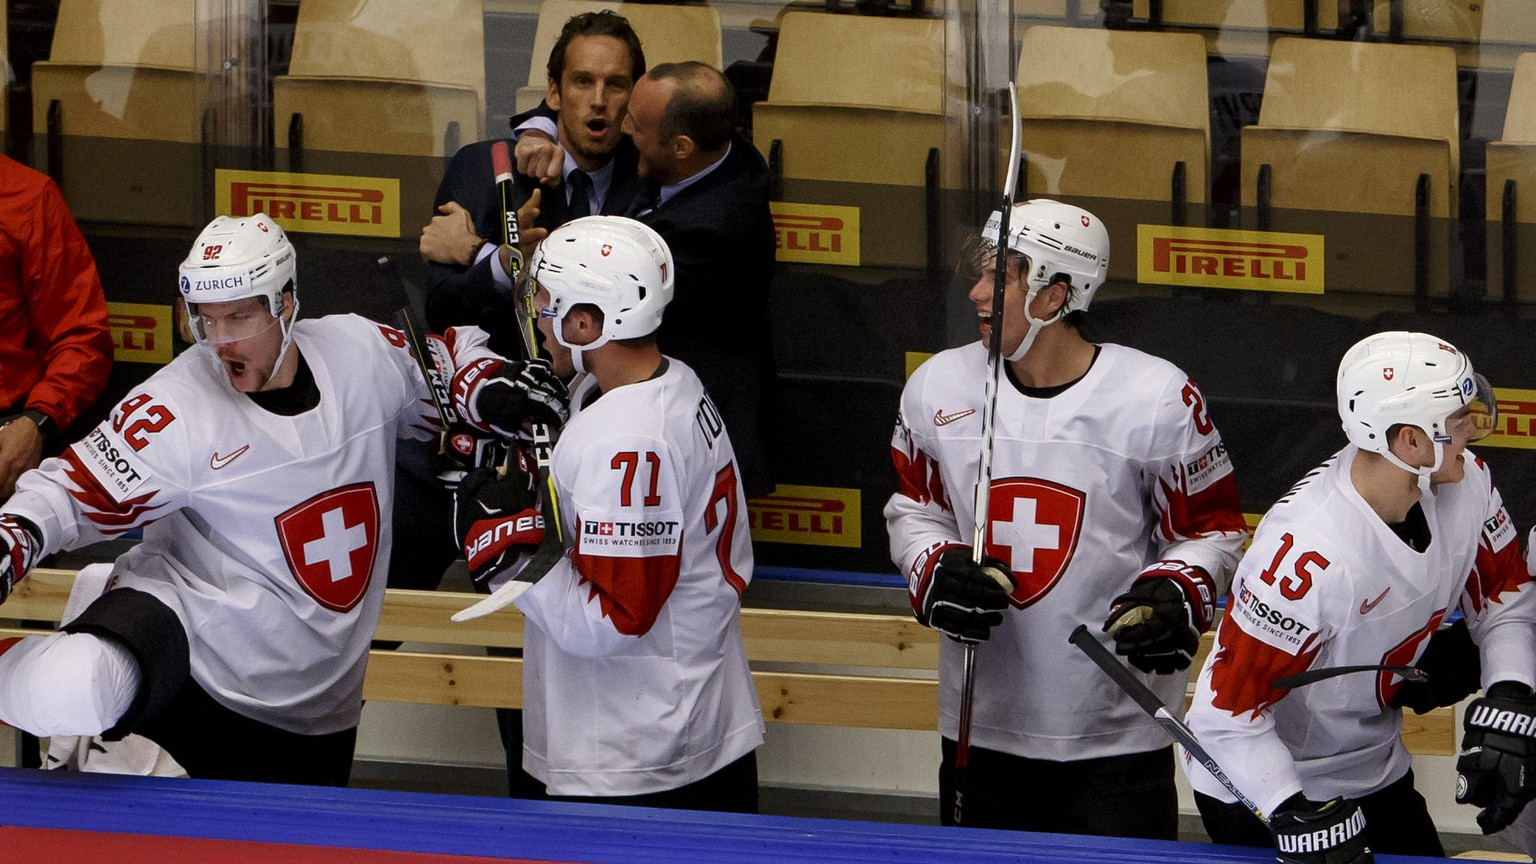 Switzerland's players celebrate their victory after beating Finland, during the IIHF 2018 World Championship quarter final game between Finland and Switzerland, at the Jyske Bank Boxen, in Herning, Denmark, Thursday, May 17, 2018. (KEYSTONE/Salvatore Di Nolfi)